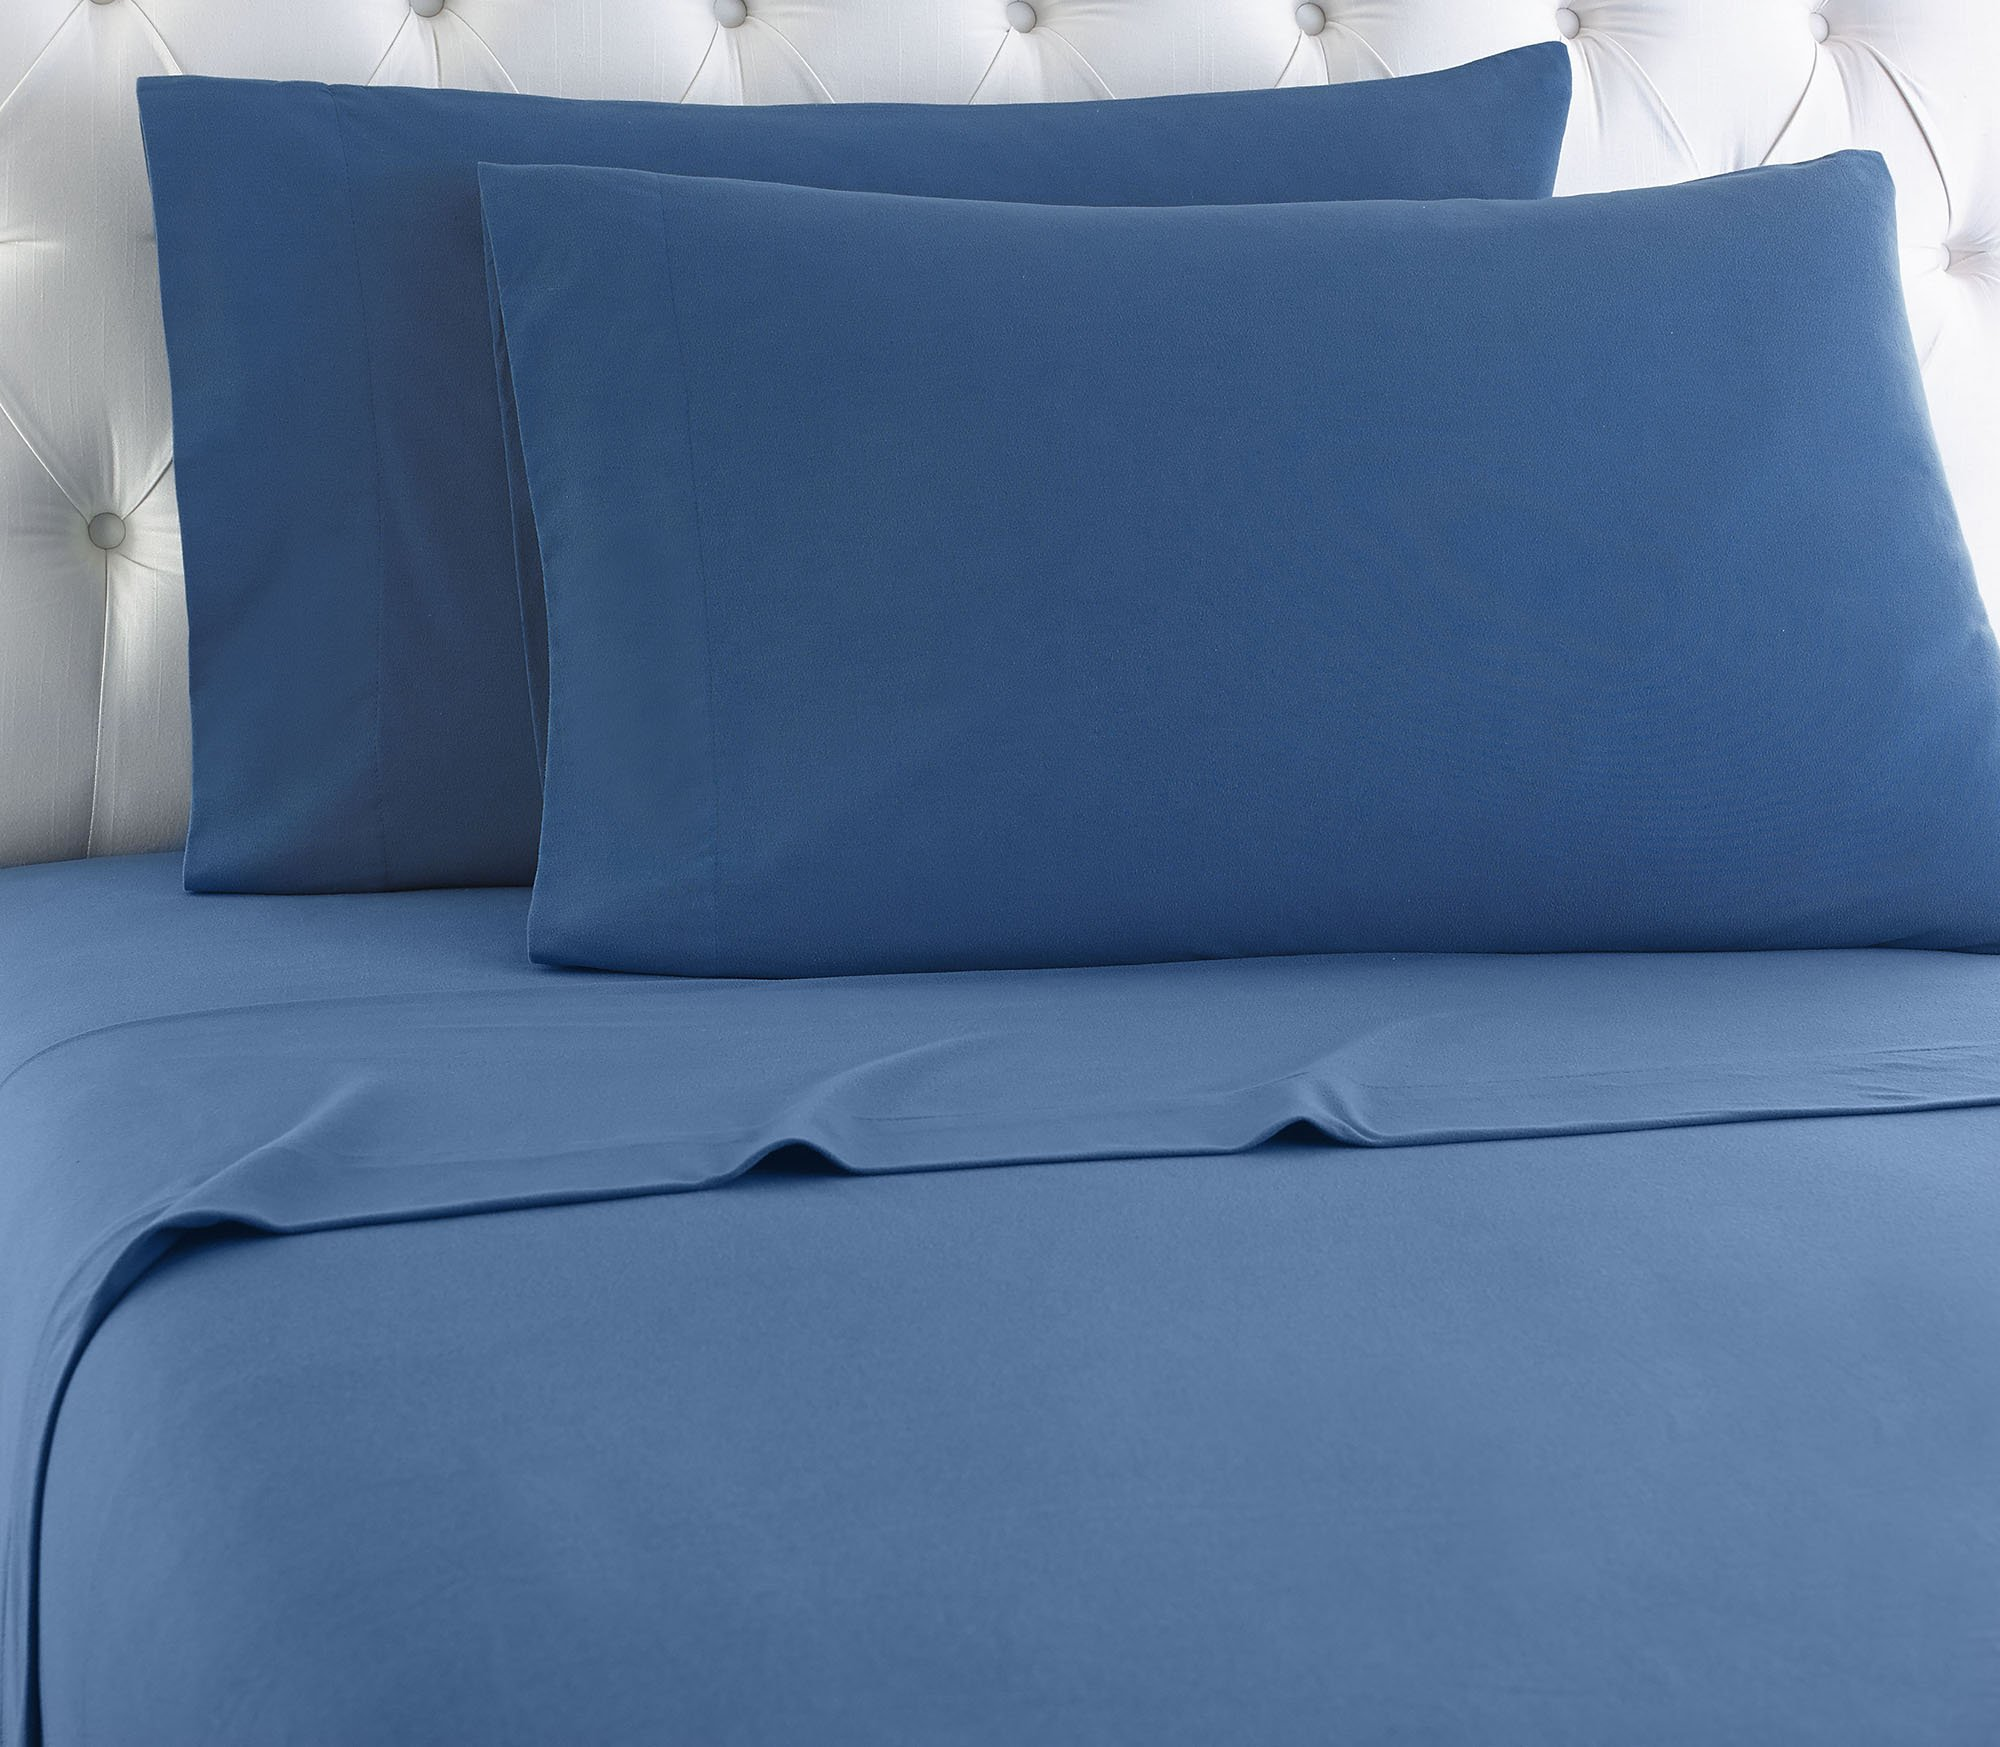 Thermee Micro Flannel Shavel Home Products Sheet Set, Country Blue, Twin